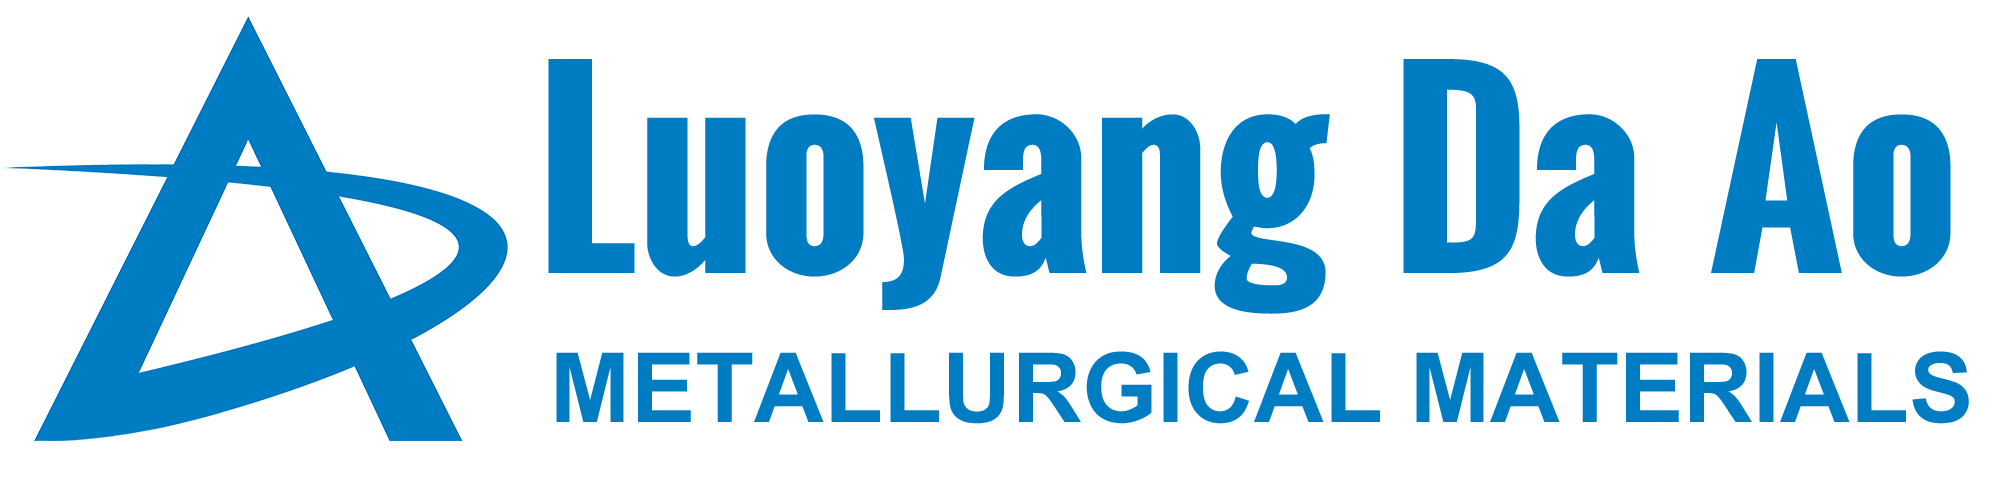 Luoyang Da Ao Metallurgical Materials Co.,Ltd.